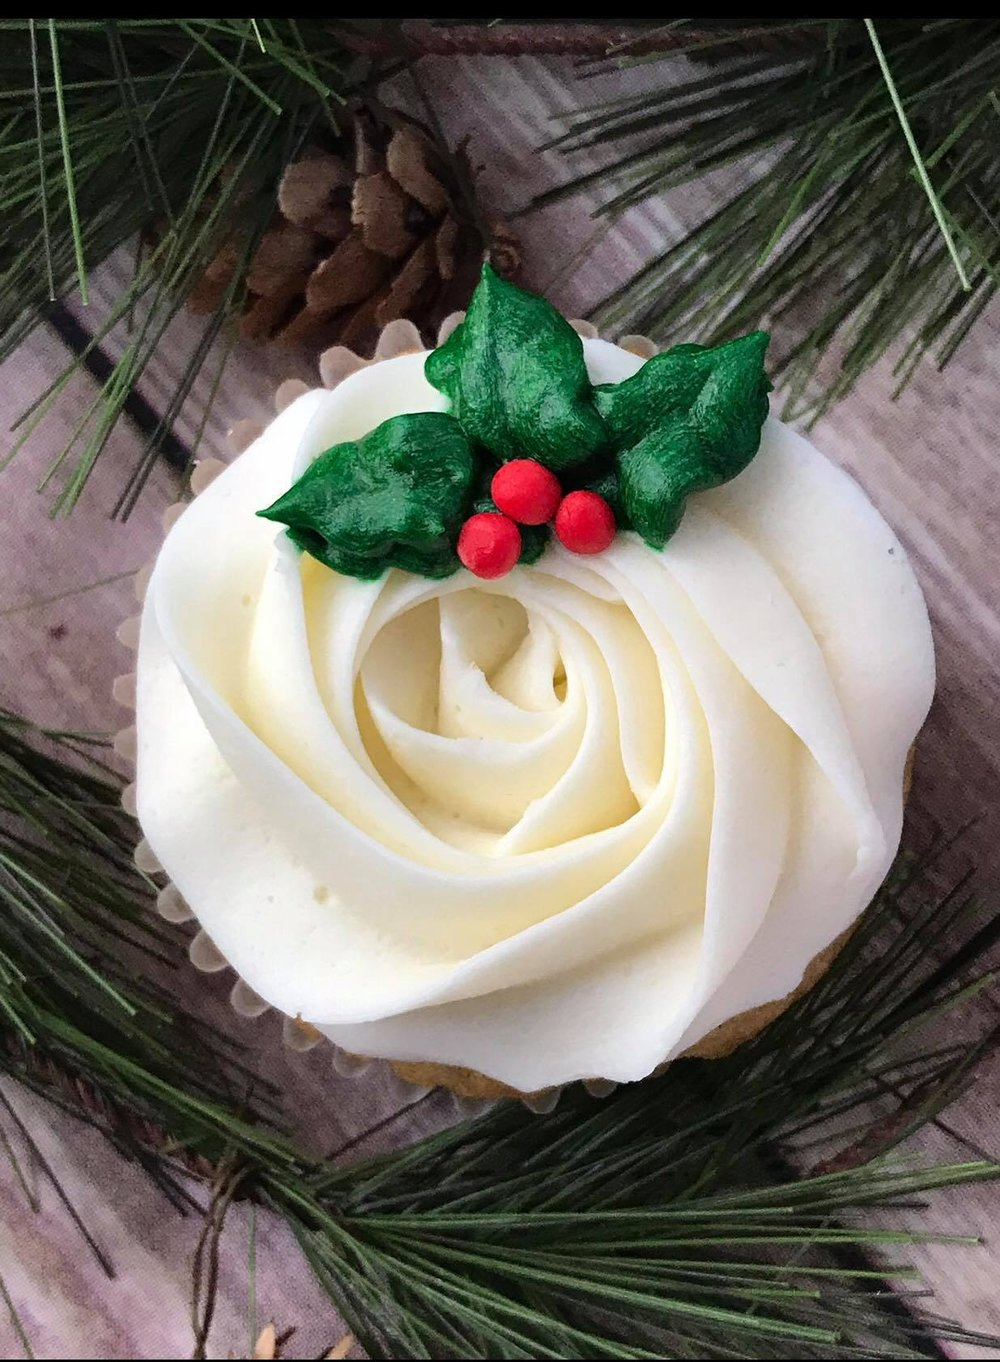 Holly Cupcakes - $30/dozen frosted with toppers